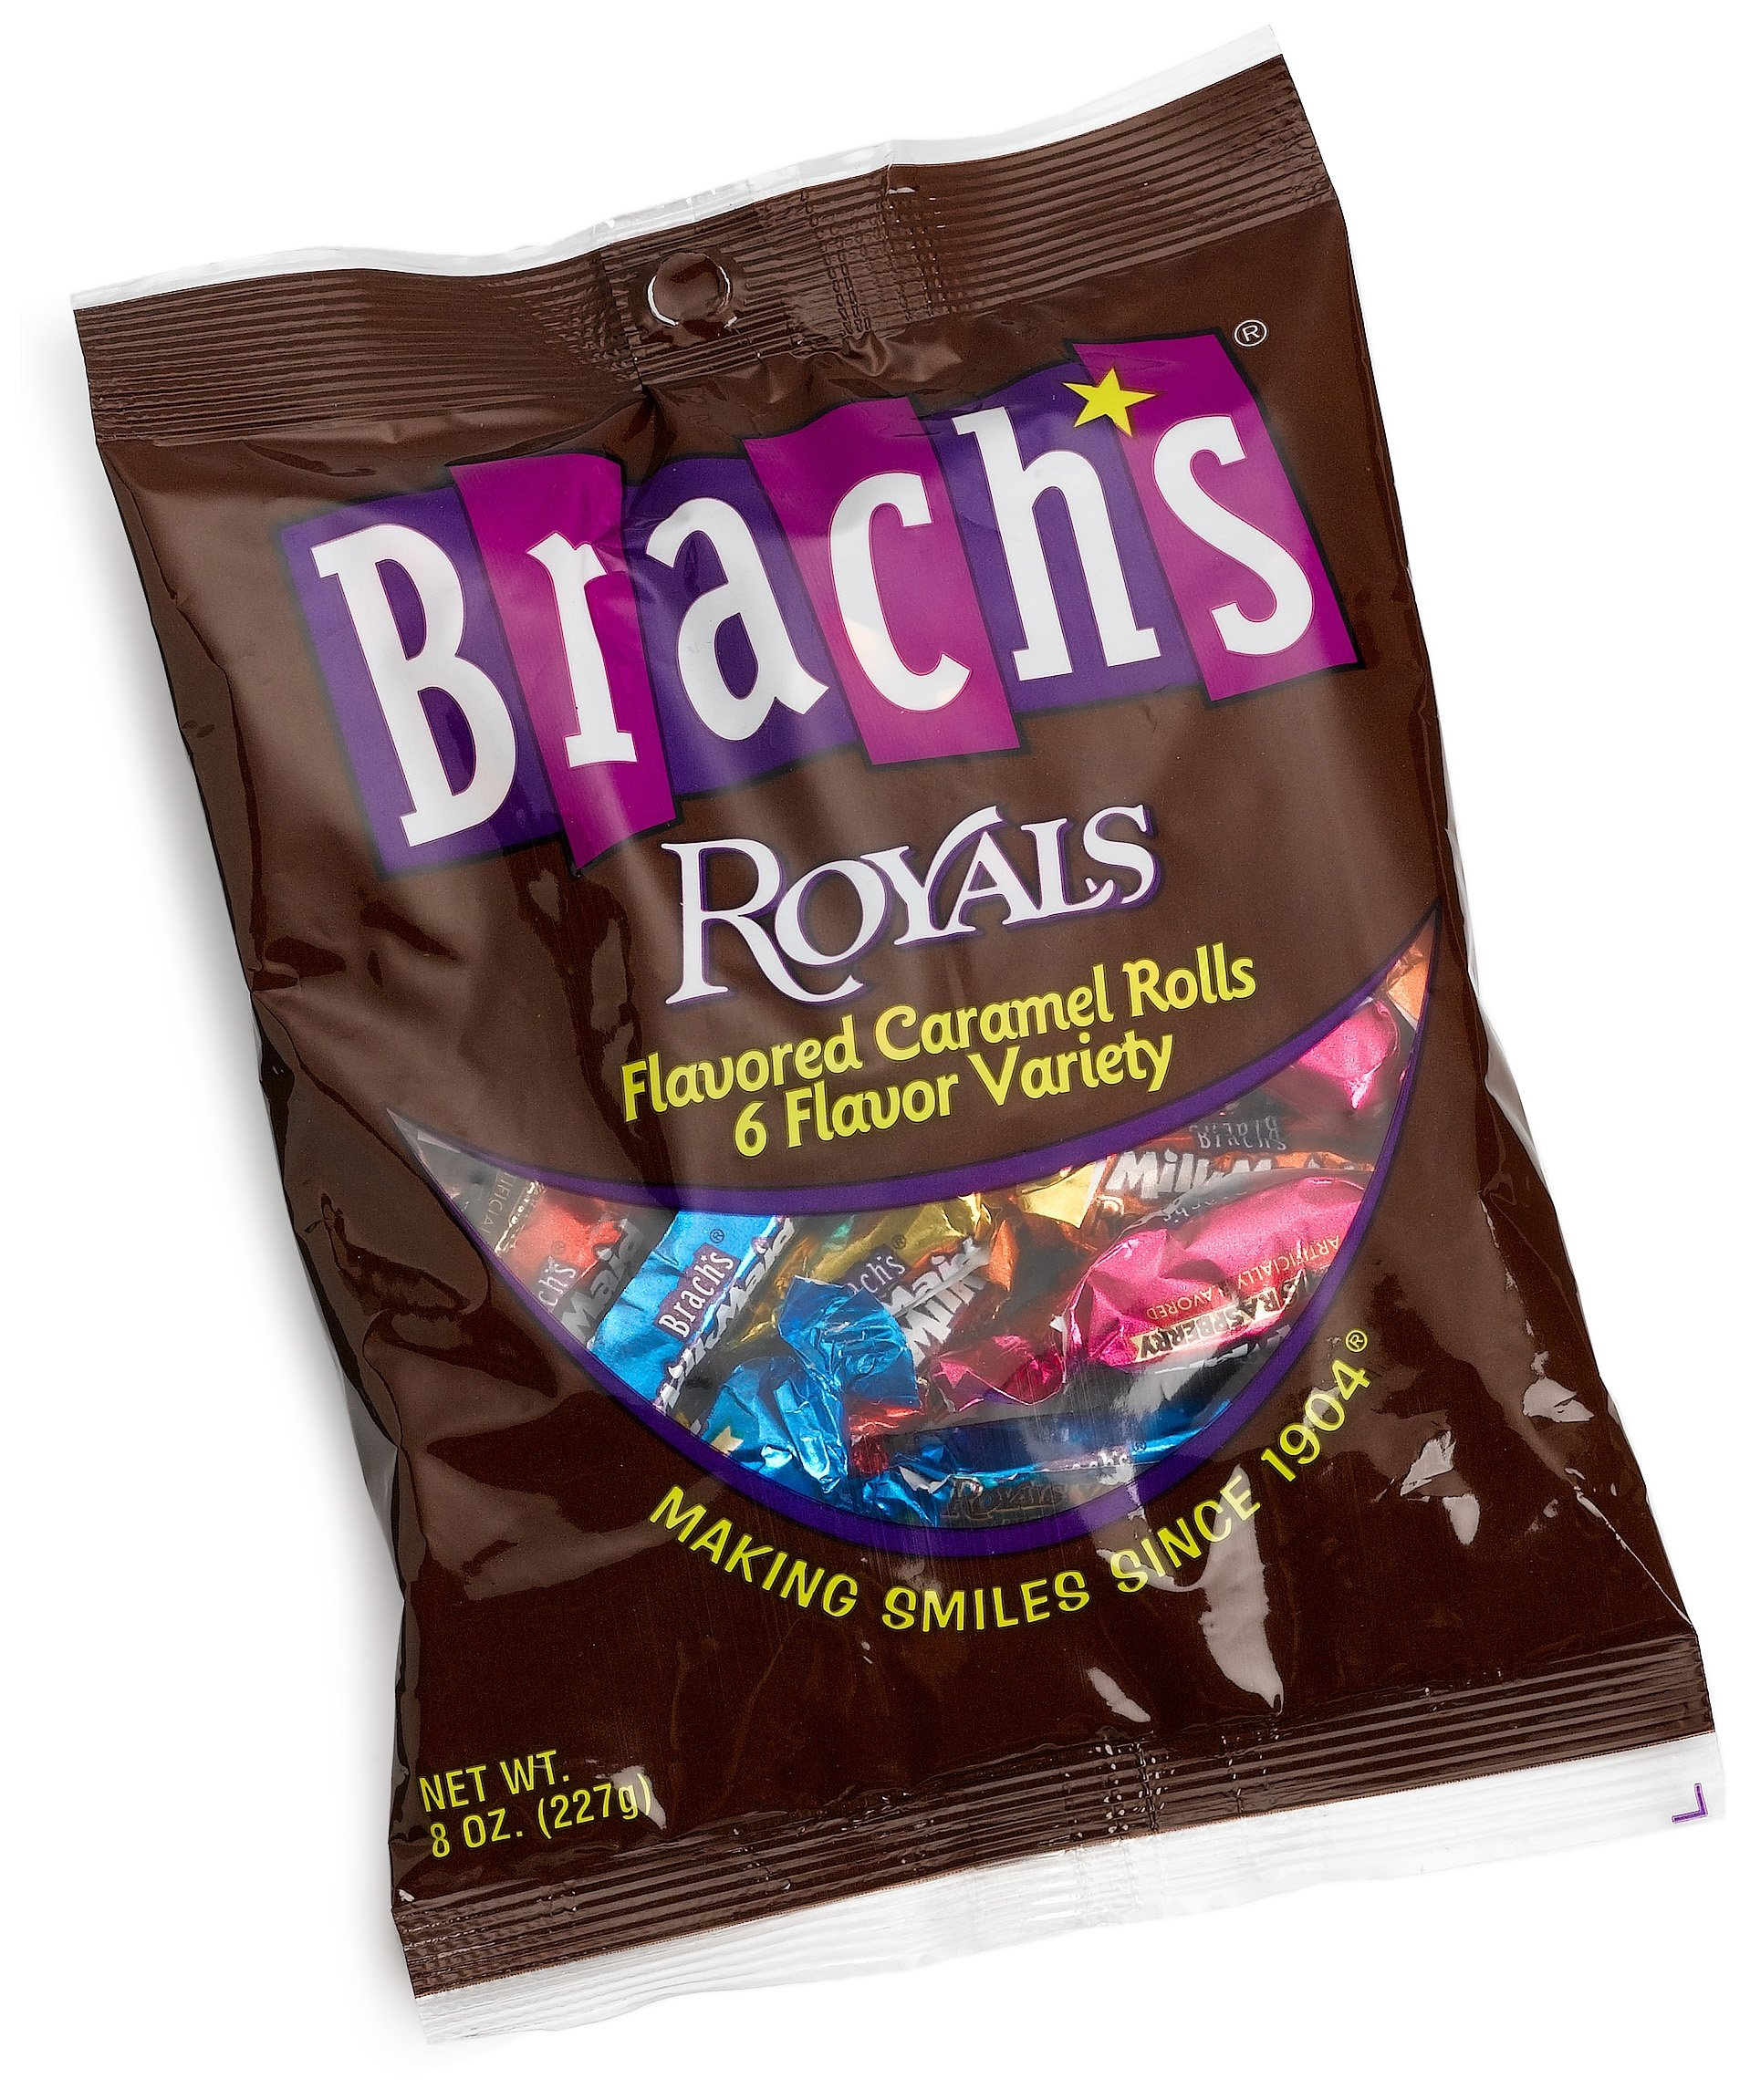 Brach's Royal Flavored Caramels, 8-Ounce Bags, Pack of 12 by Brach's